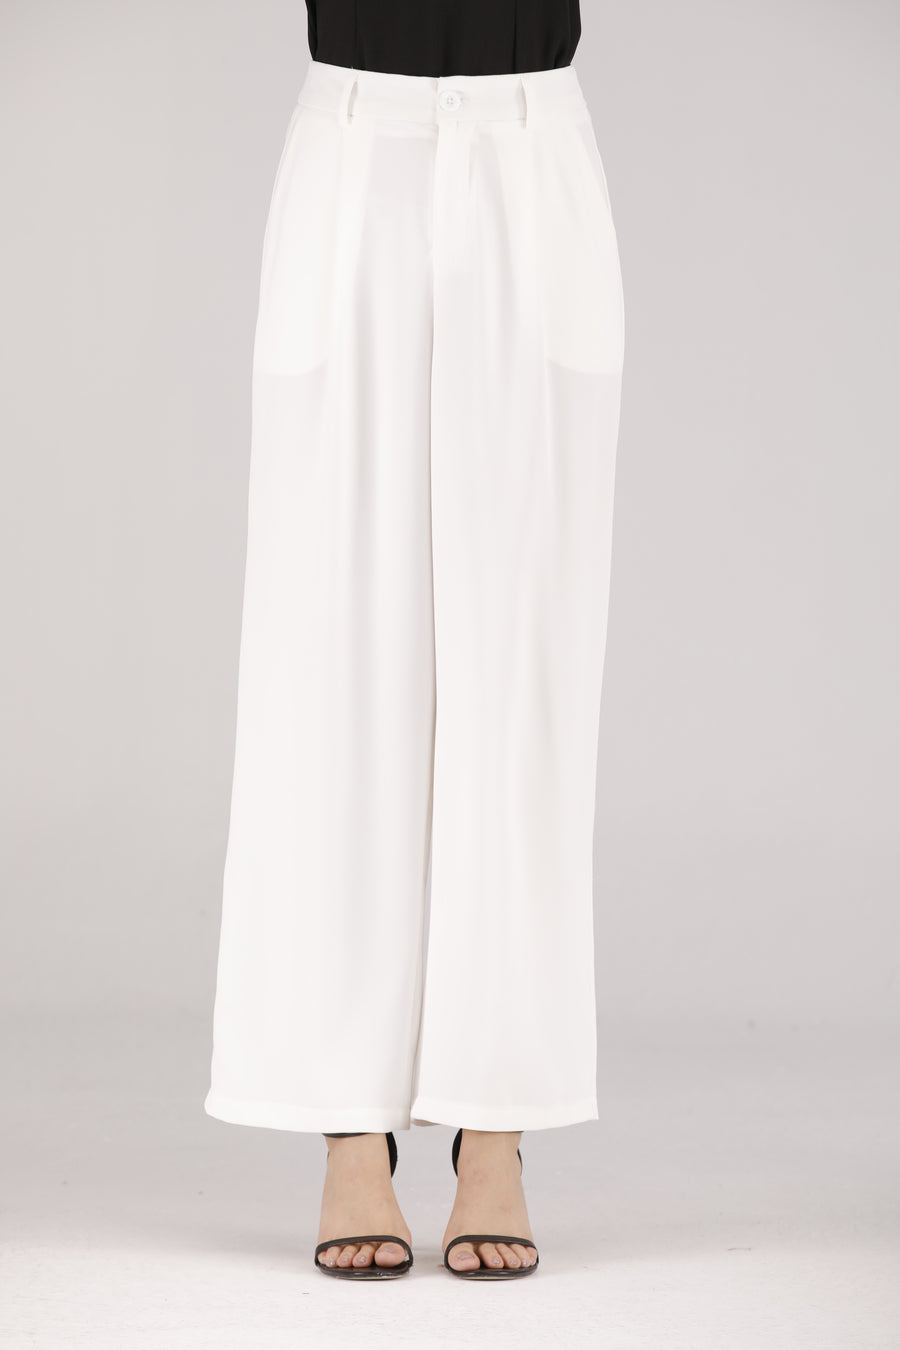 Mantra Pakistan White Pants with White Button | BOTTOMS